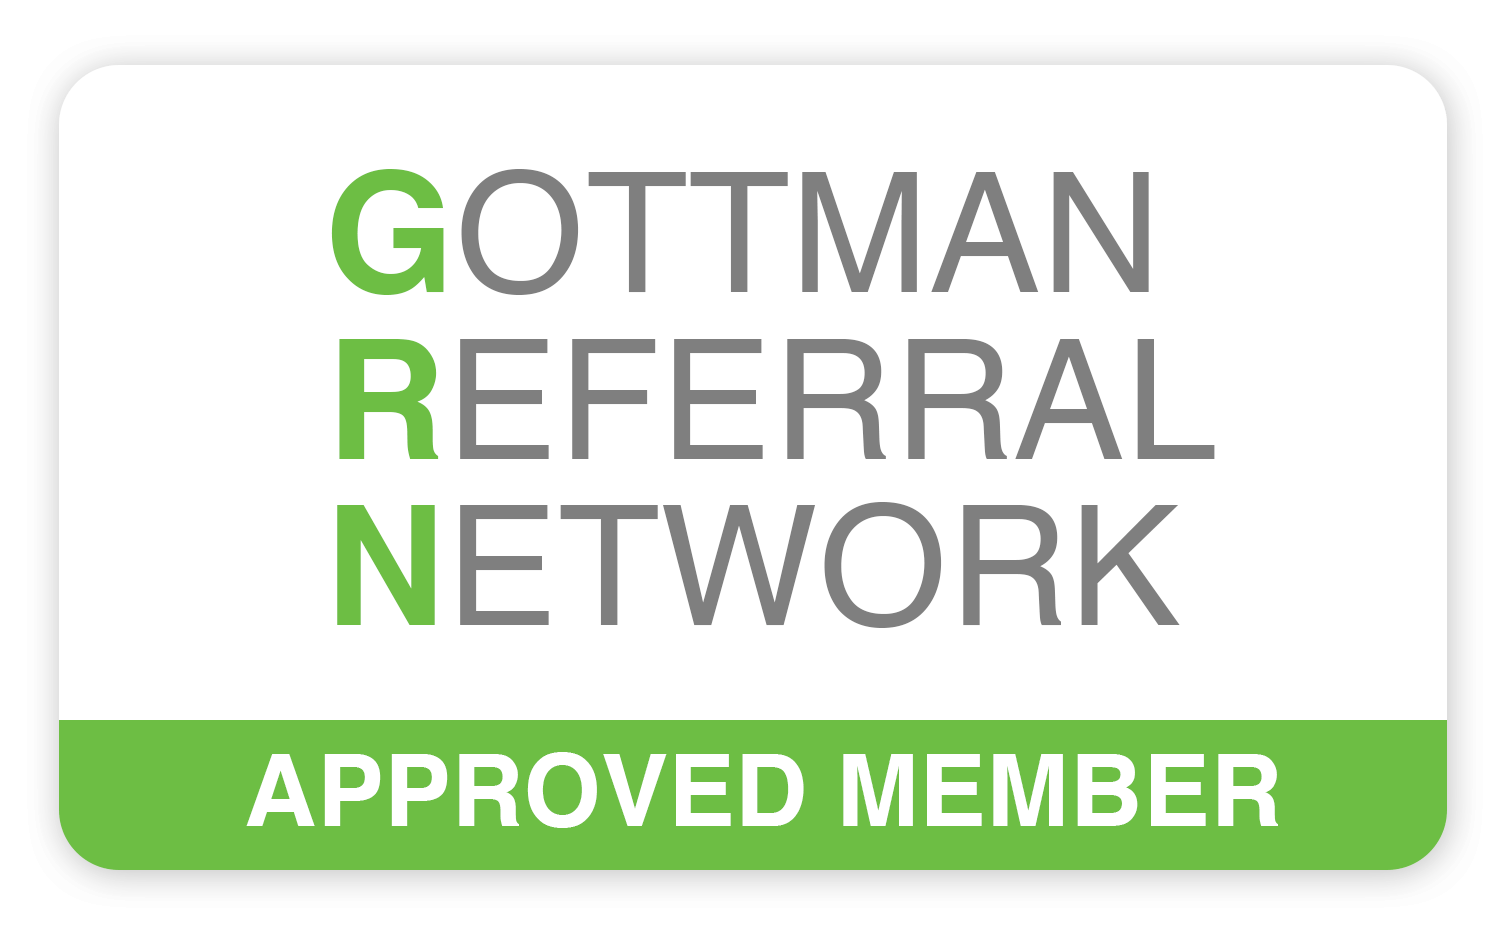 Paula Nelson's profile on the Gottman Referral Network